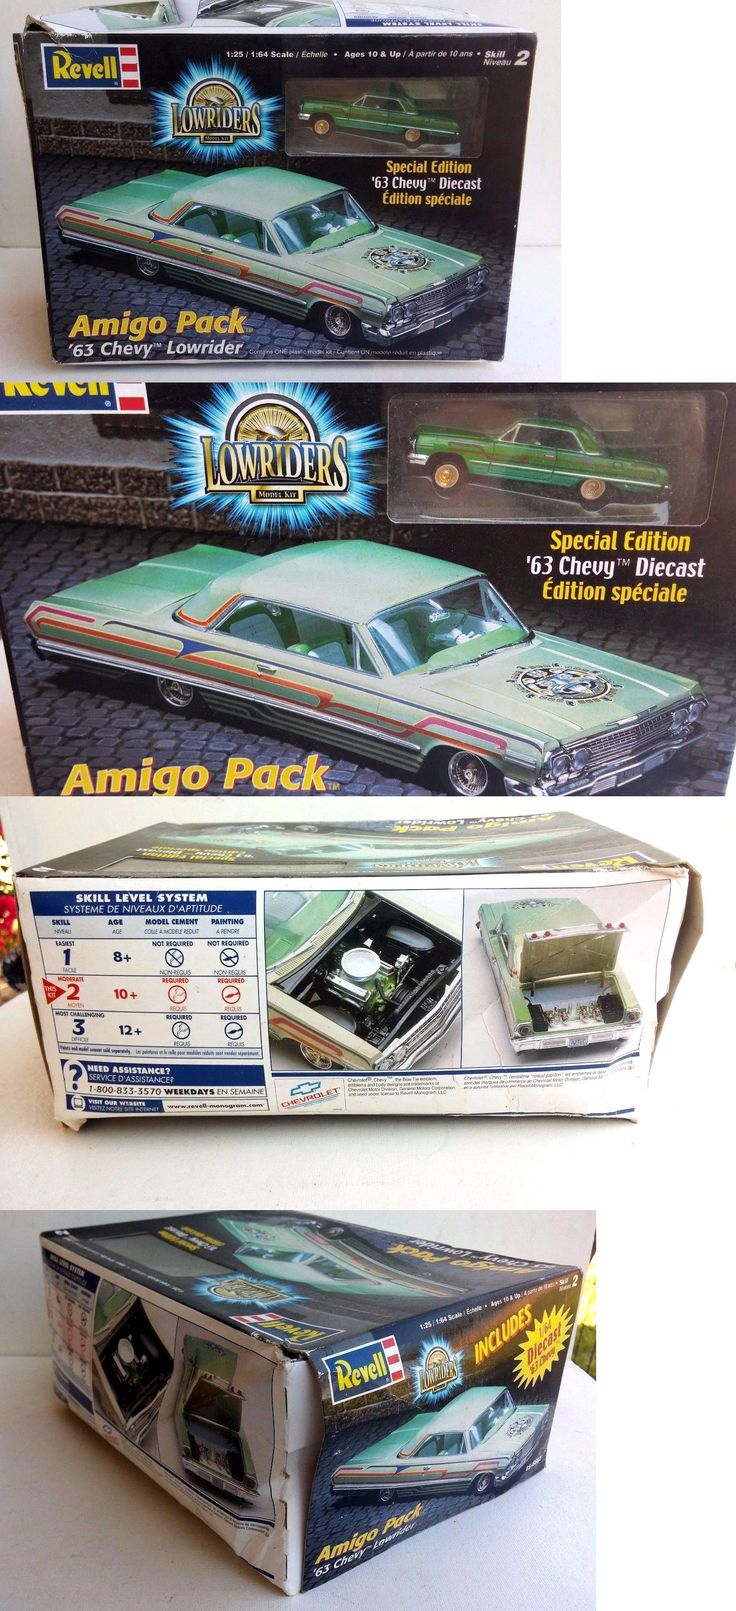 Other Sports Car Models and Kits 2583: New In Box~Revell Amigo Pack 63 Chevy Lowrider-W Diecast~#85-6682~1:25 Scale -> BUY IT NOW ONLY: $53.95 on eBay!